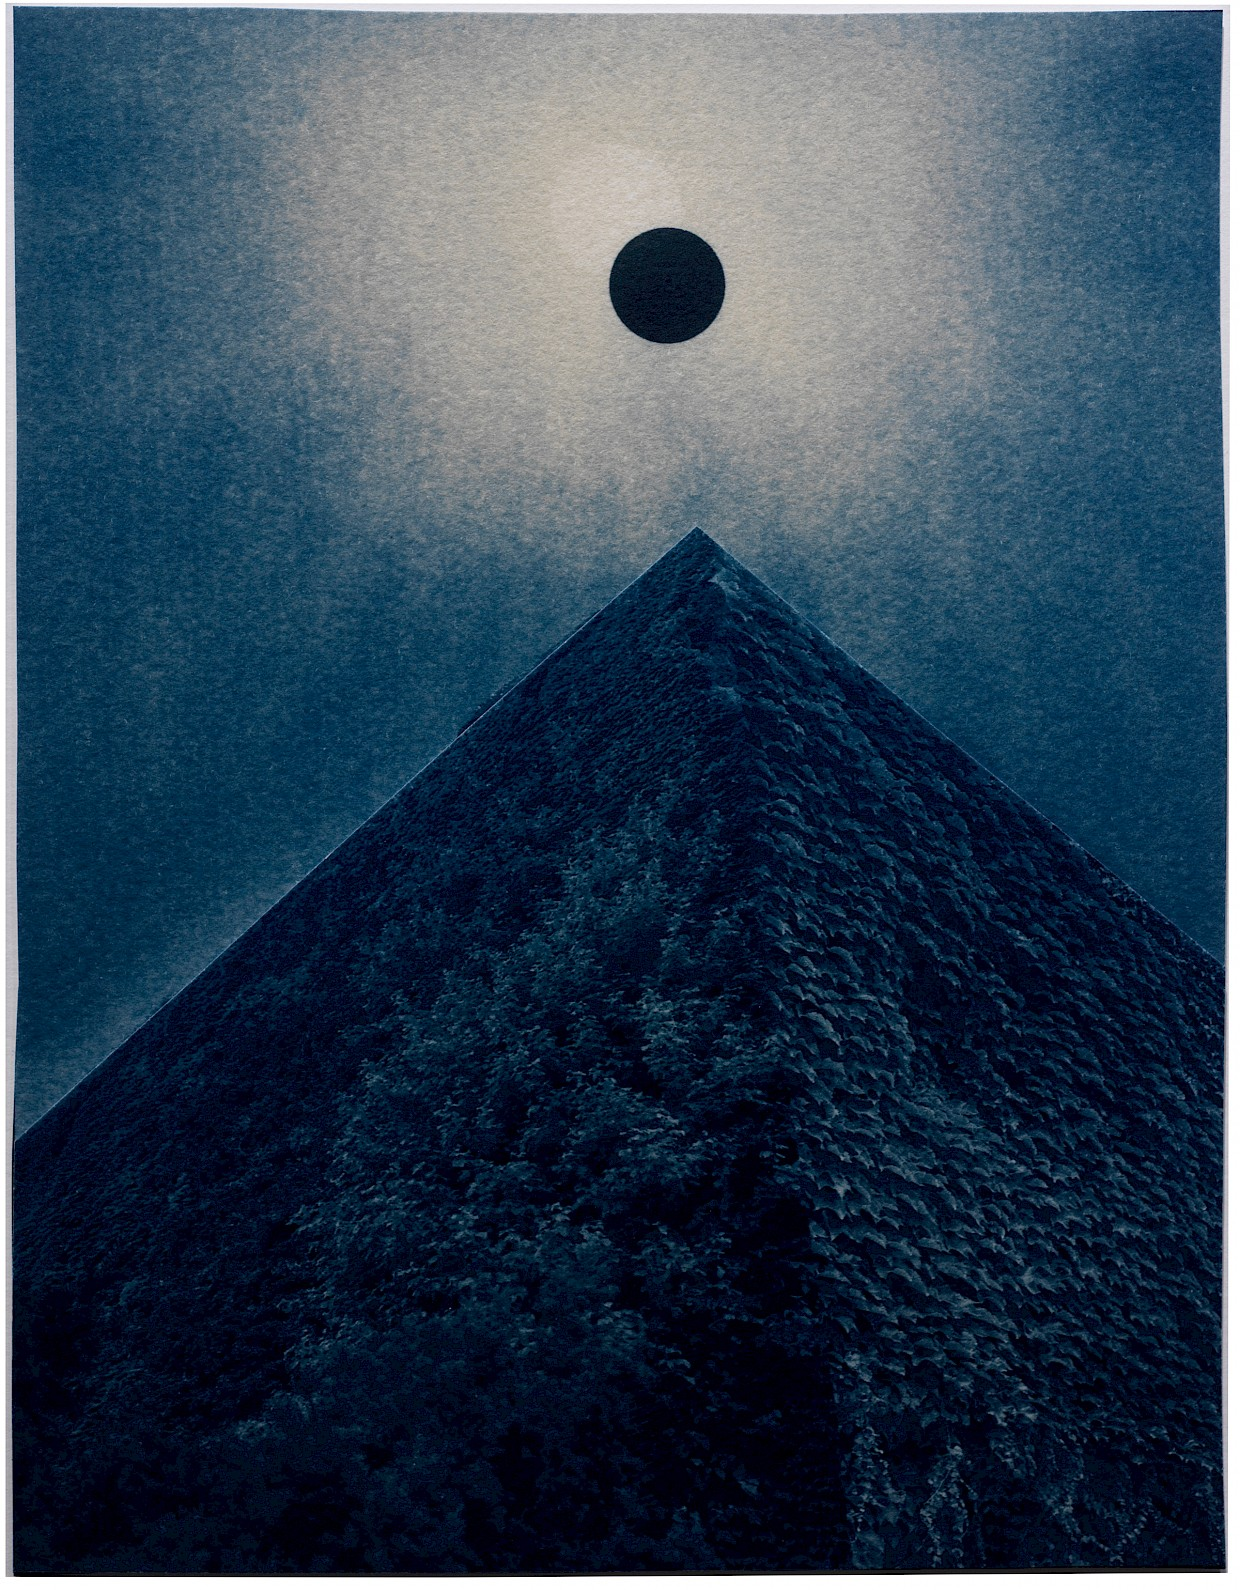 Metaphor Power of Myth Pyramid and Eclipse Sun and Moon seal eternity permanence